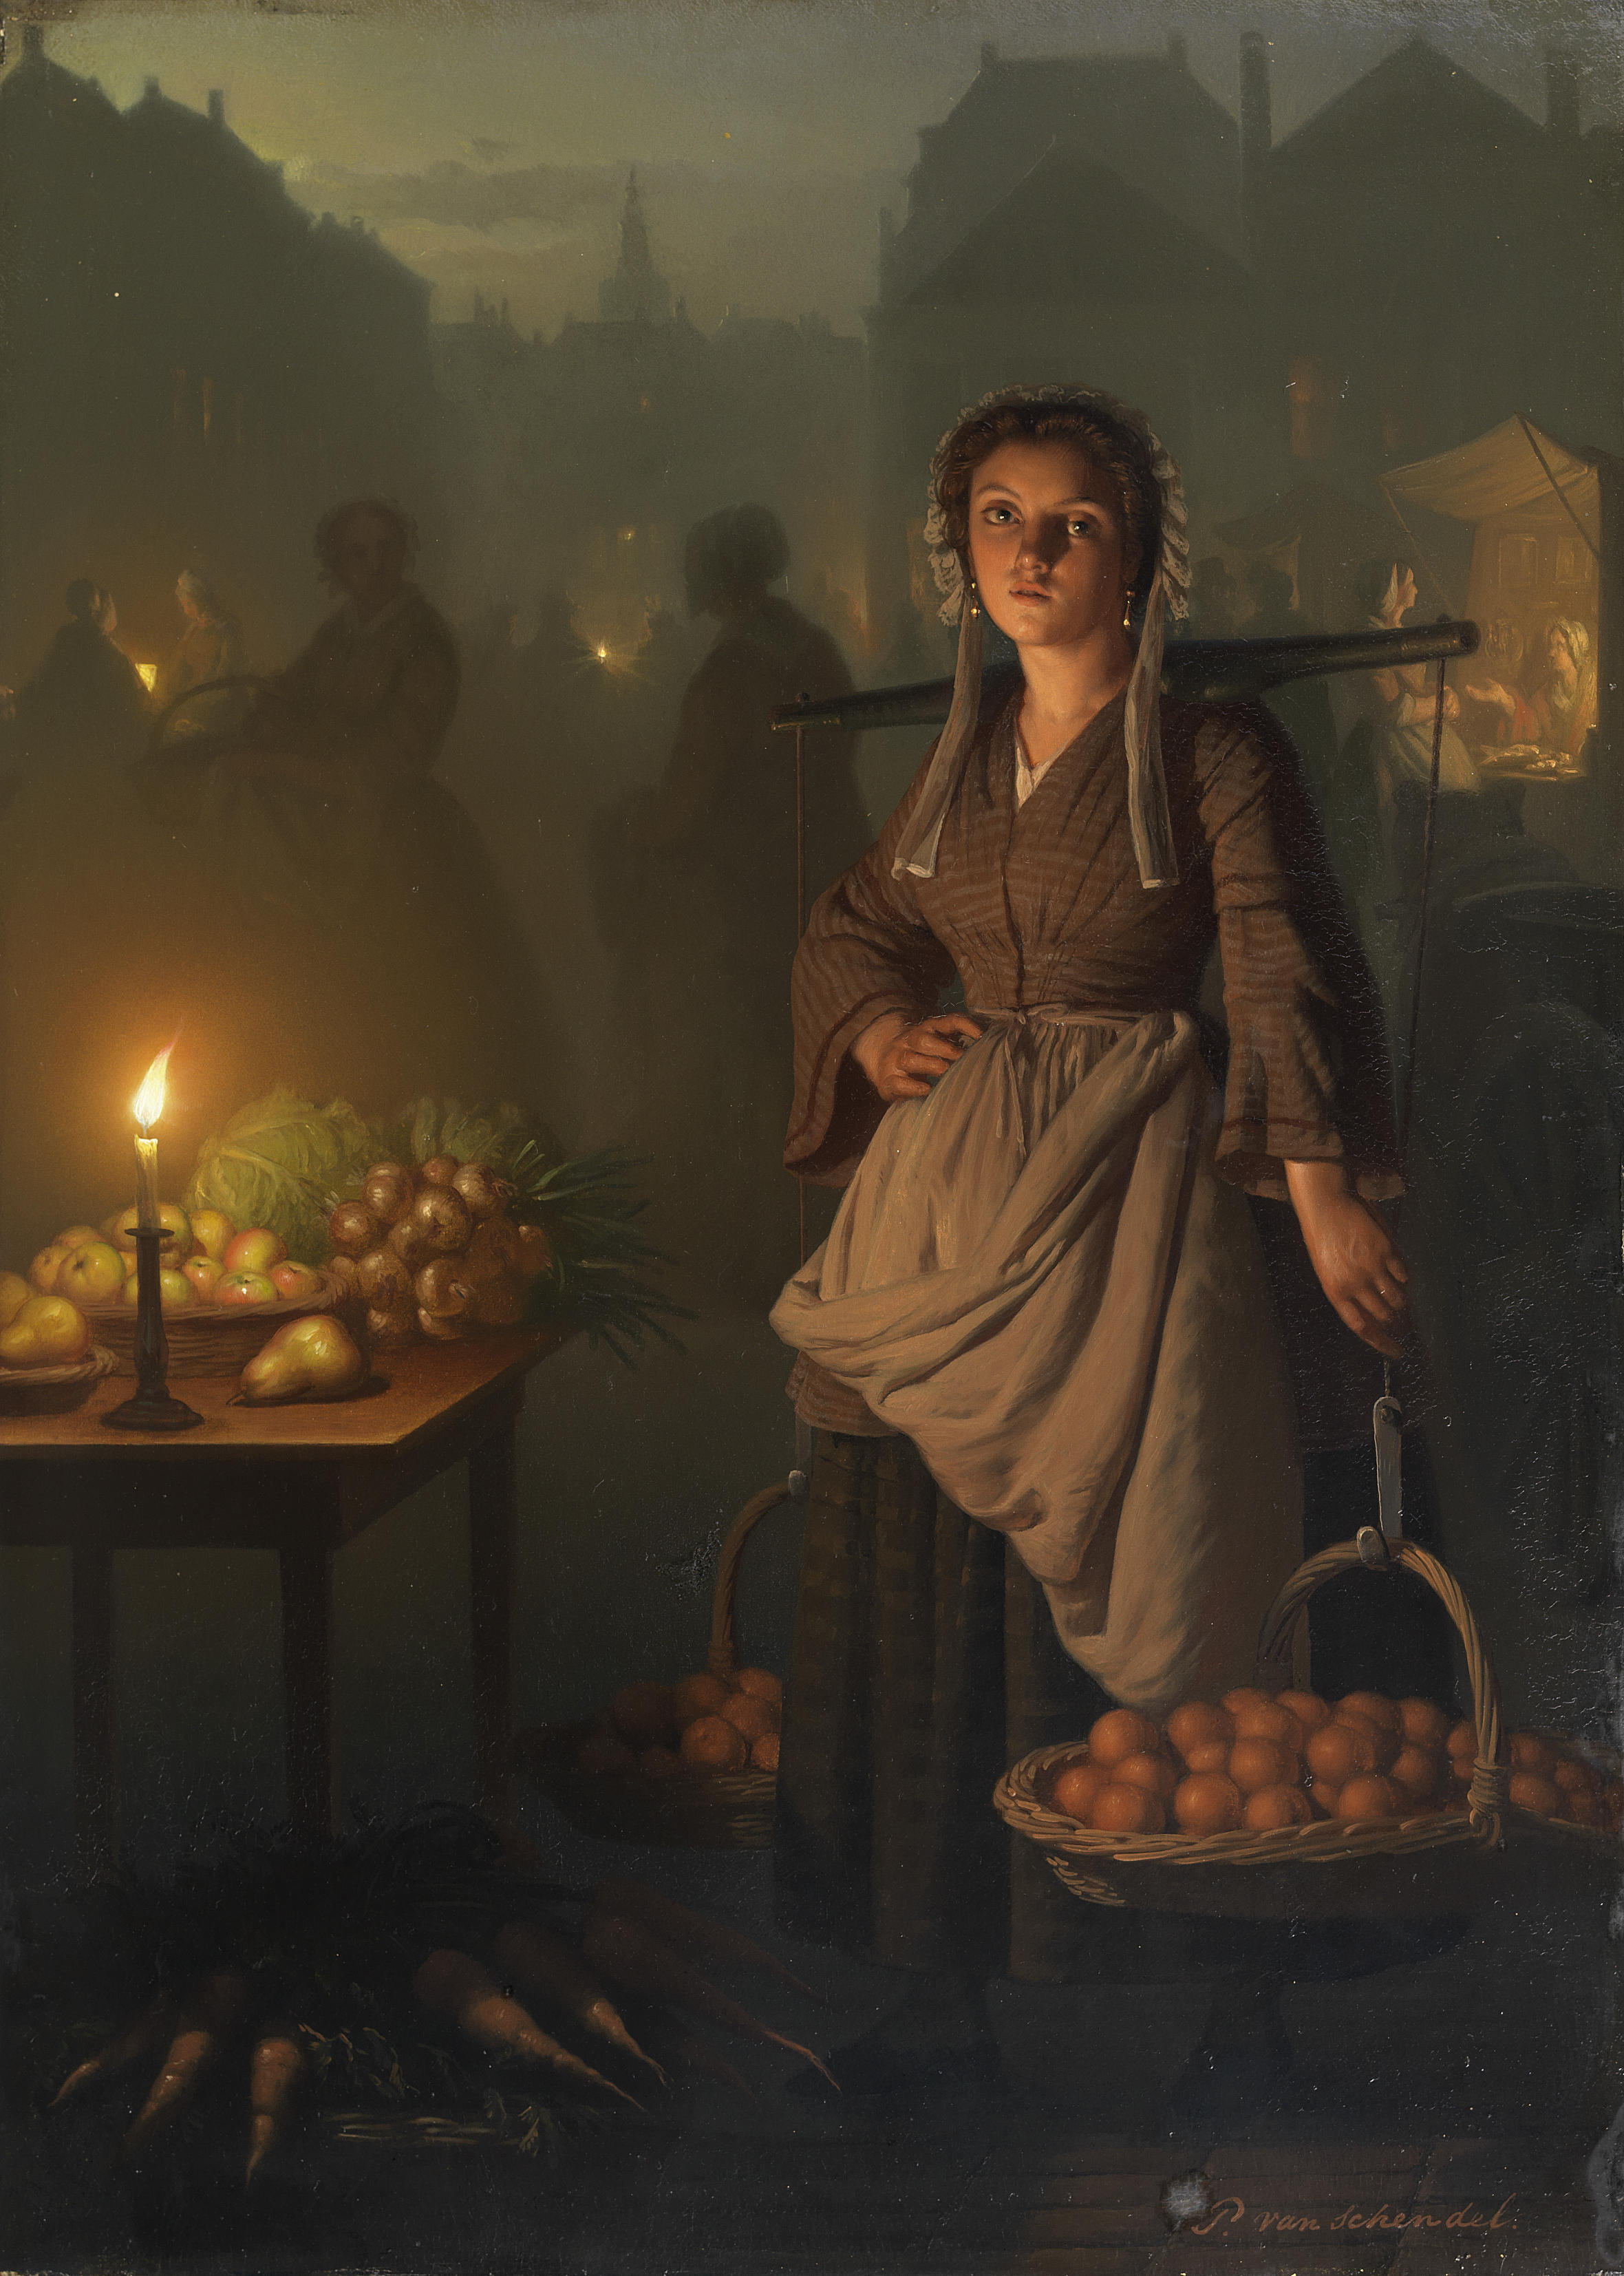 Light Petrus_van_Schendel_Market_by_candlelight